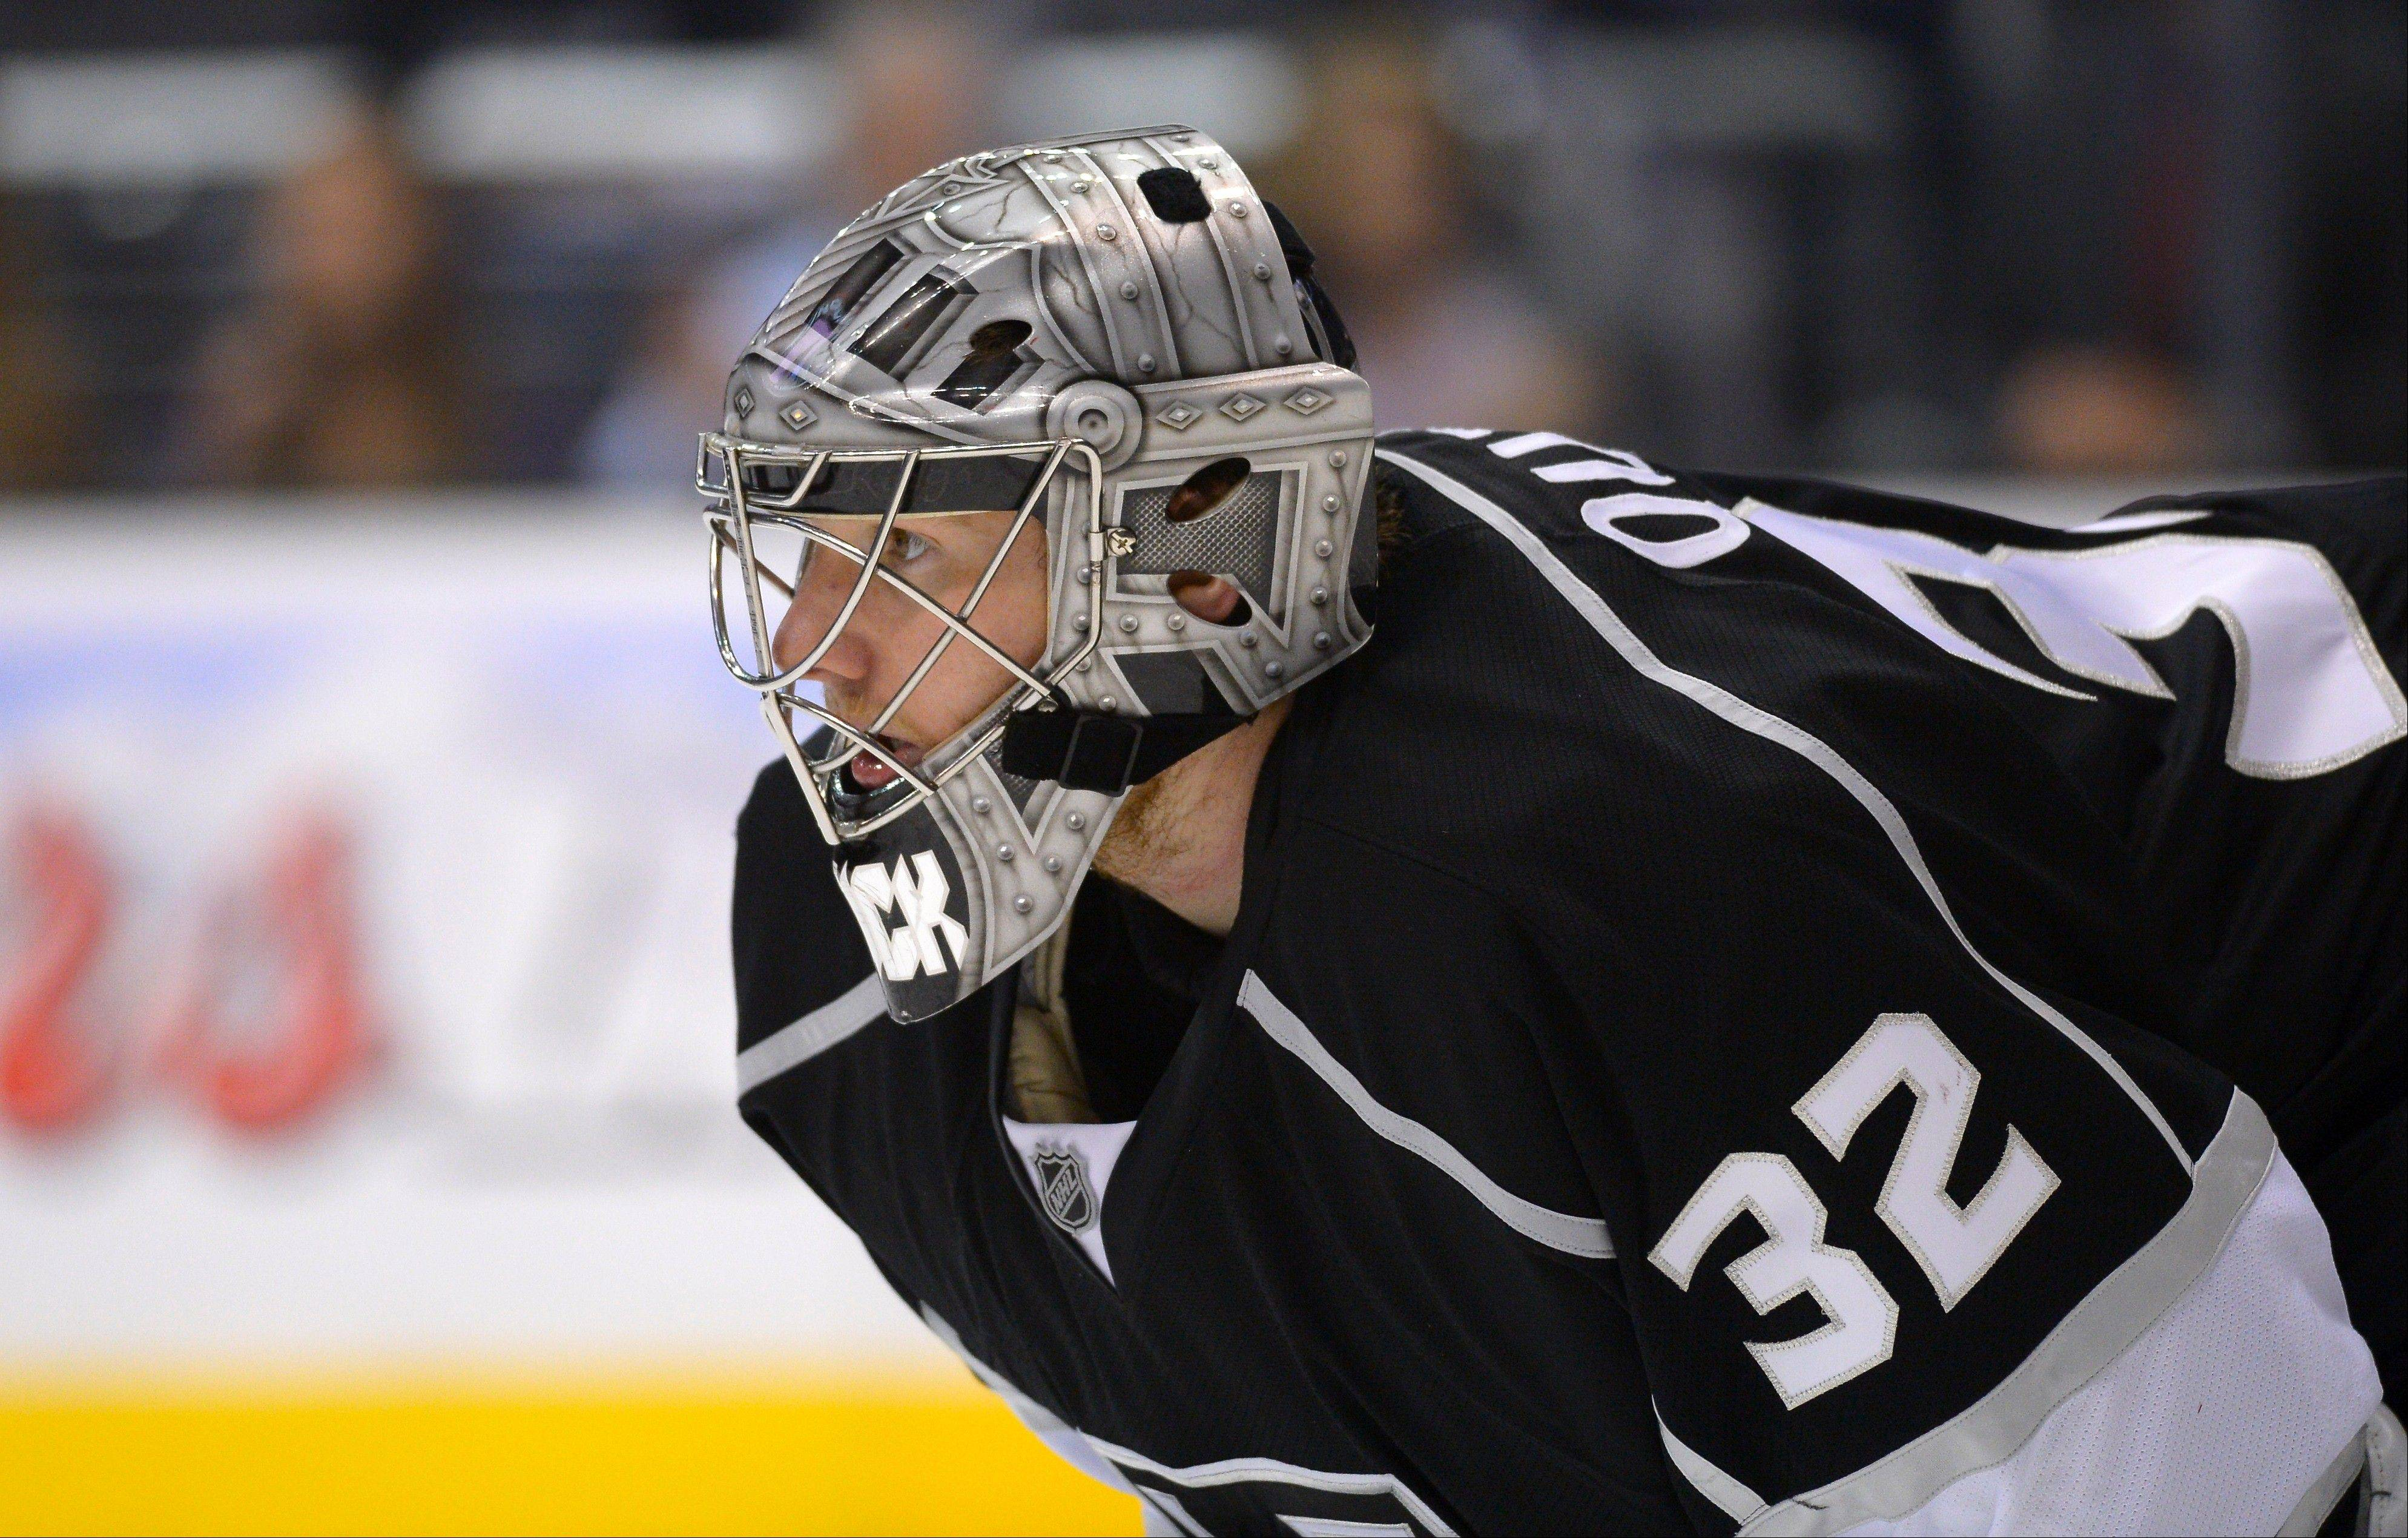 Los Angeles Kings goalie Jonathan Quick is the leading stopper in the playoffs and the only one with a Stanley Cup title.